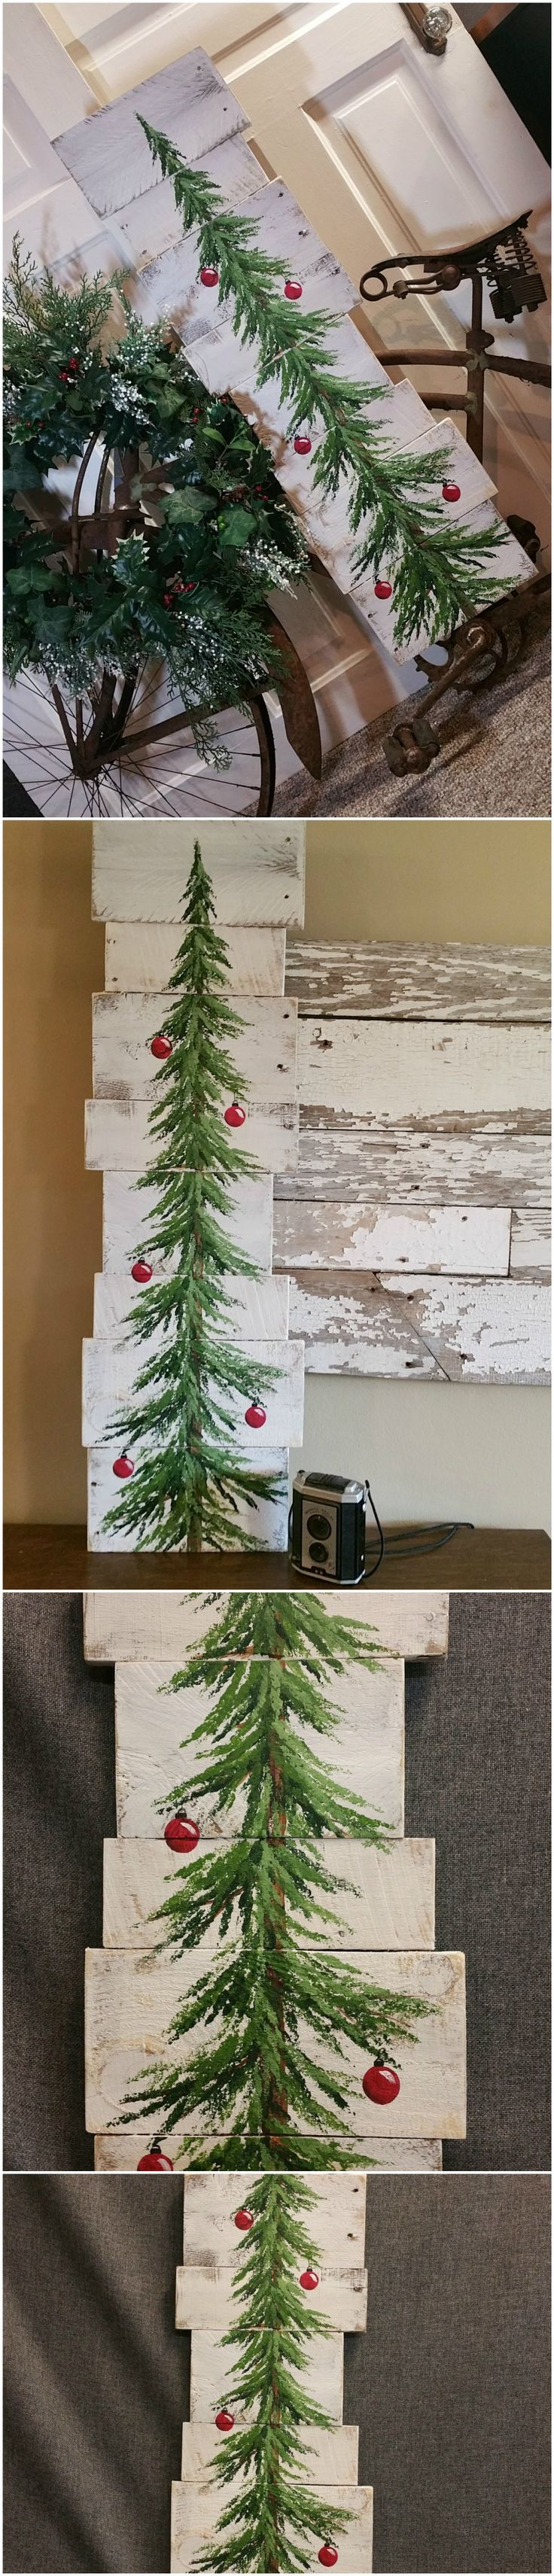 "White washed, Red bulbs, Christmas Pine tree Reclaimed Wood Pallet Art, Christmas Hand painted, upcycled, Wall art, Distressed  Original Acrylic painting on reclaimed Pallet boards. This unique piece is 36"" x apprx. 12""  This Christmas tree with red bulbs on a white-washed background is perfect for a personalized rustic touch to your Christmas decorating. Perfect for that skinny wall space or just lean it against the wall."